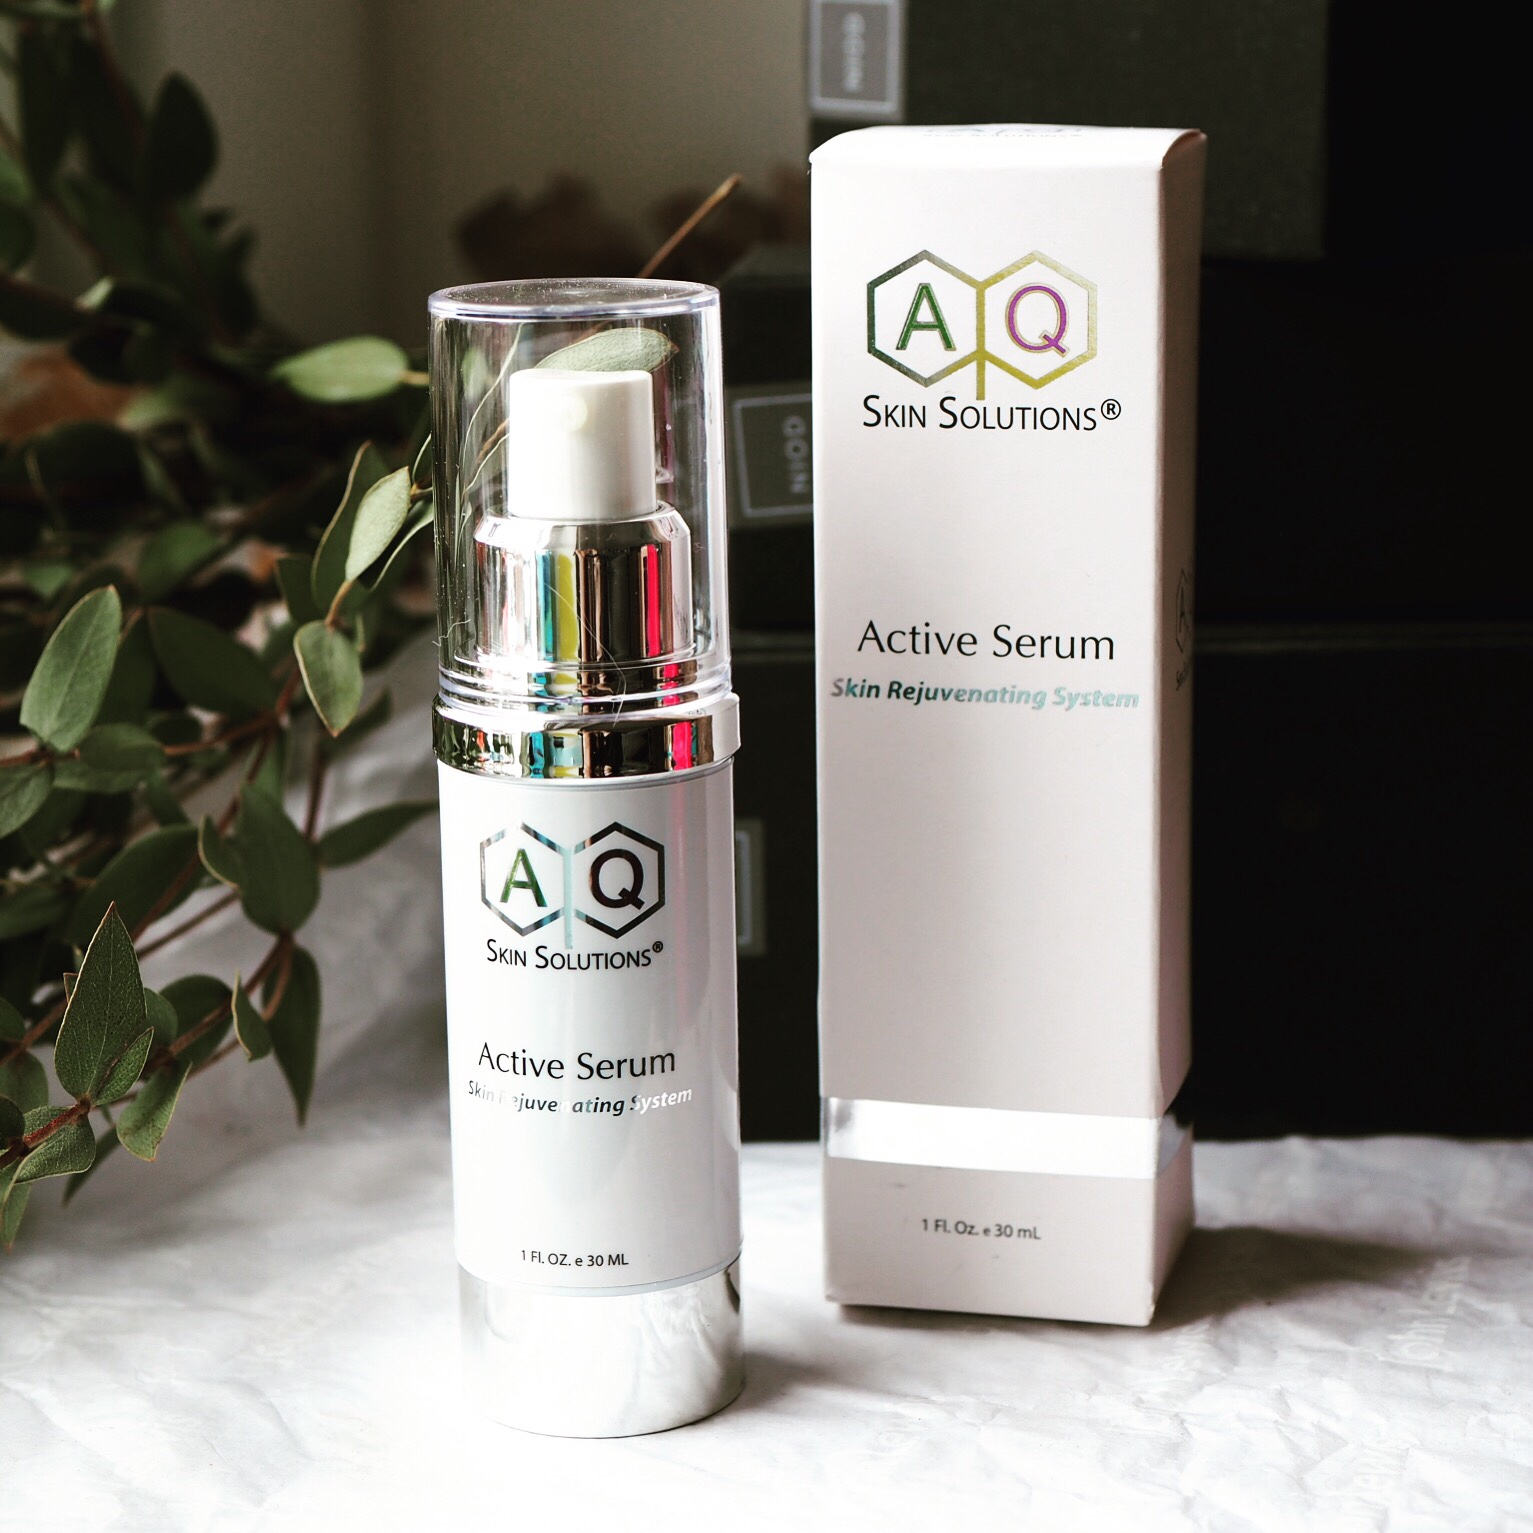 Review of AQ Skin Solutions EGF Rich Active Serum With